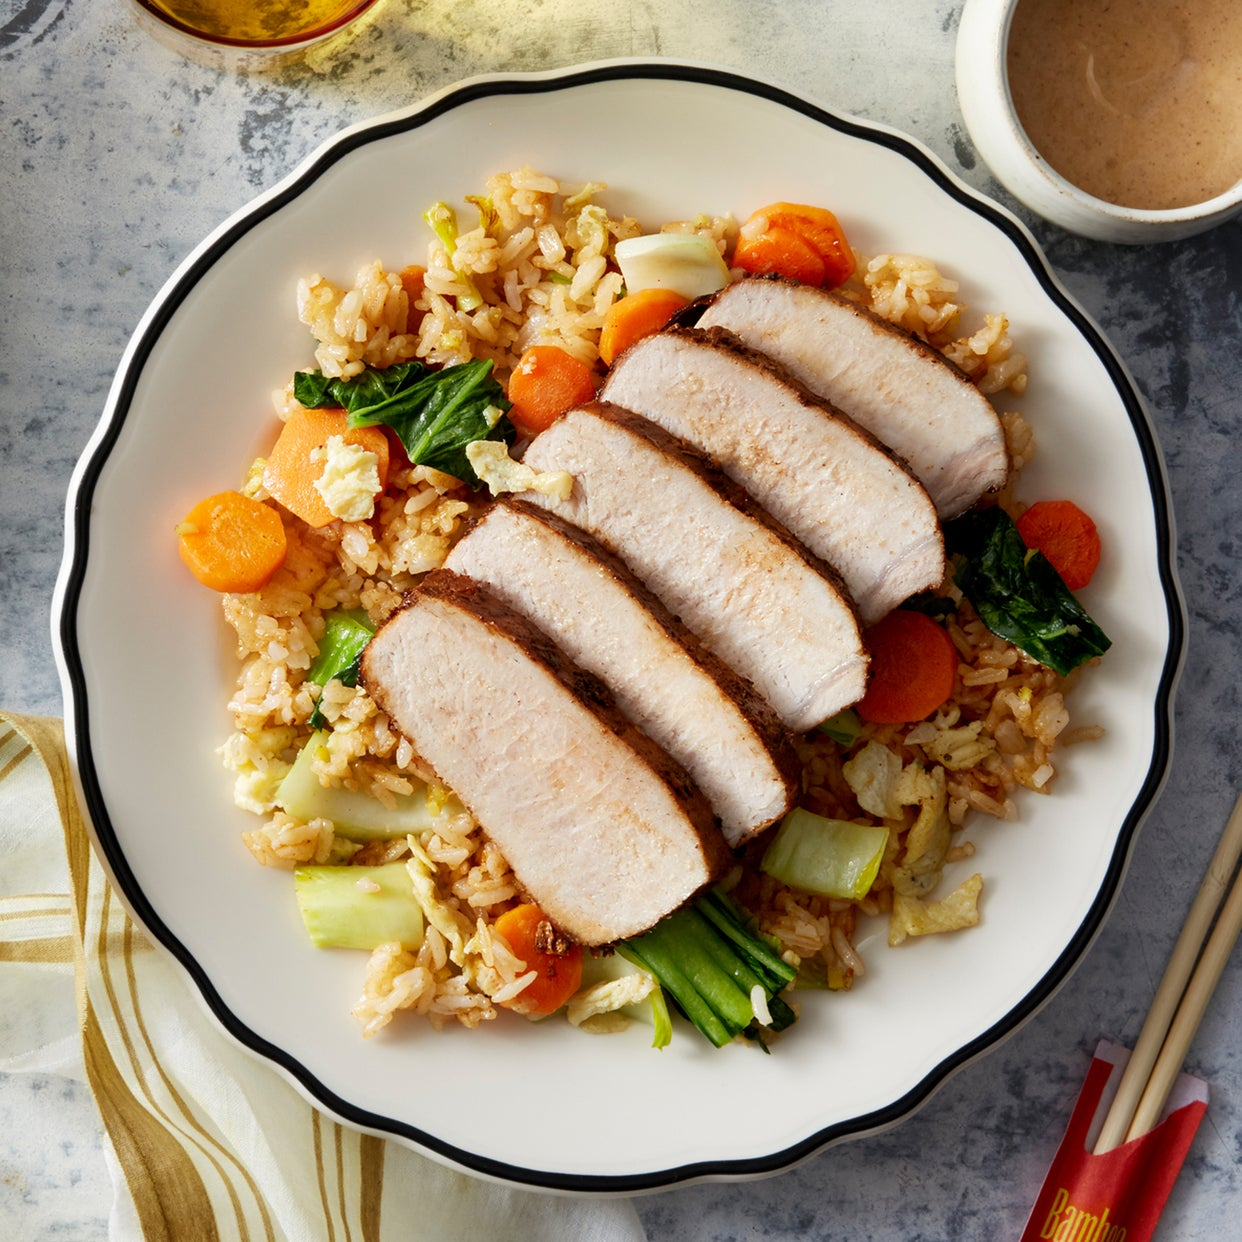 Roast Pork & Cumin Sauce with Vegetable Fried Rice